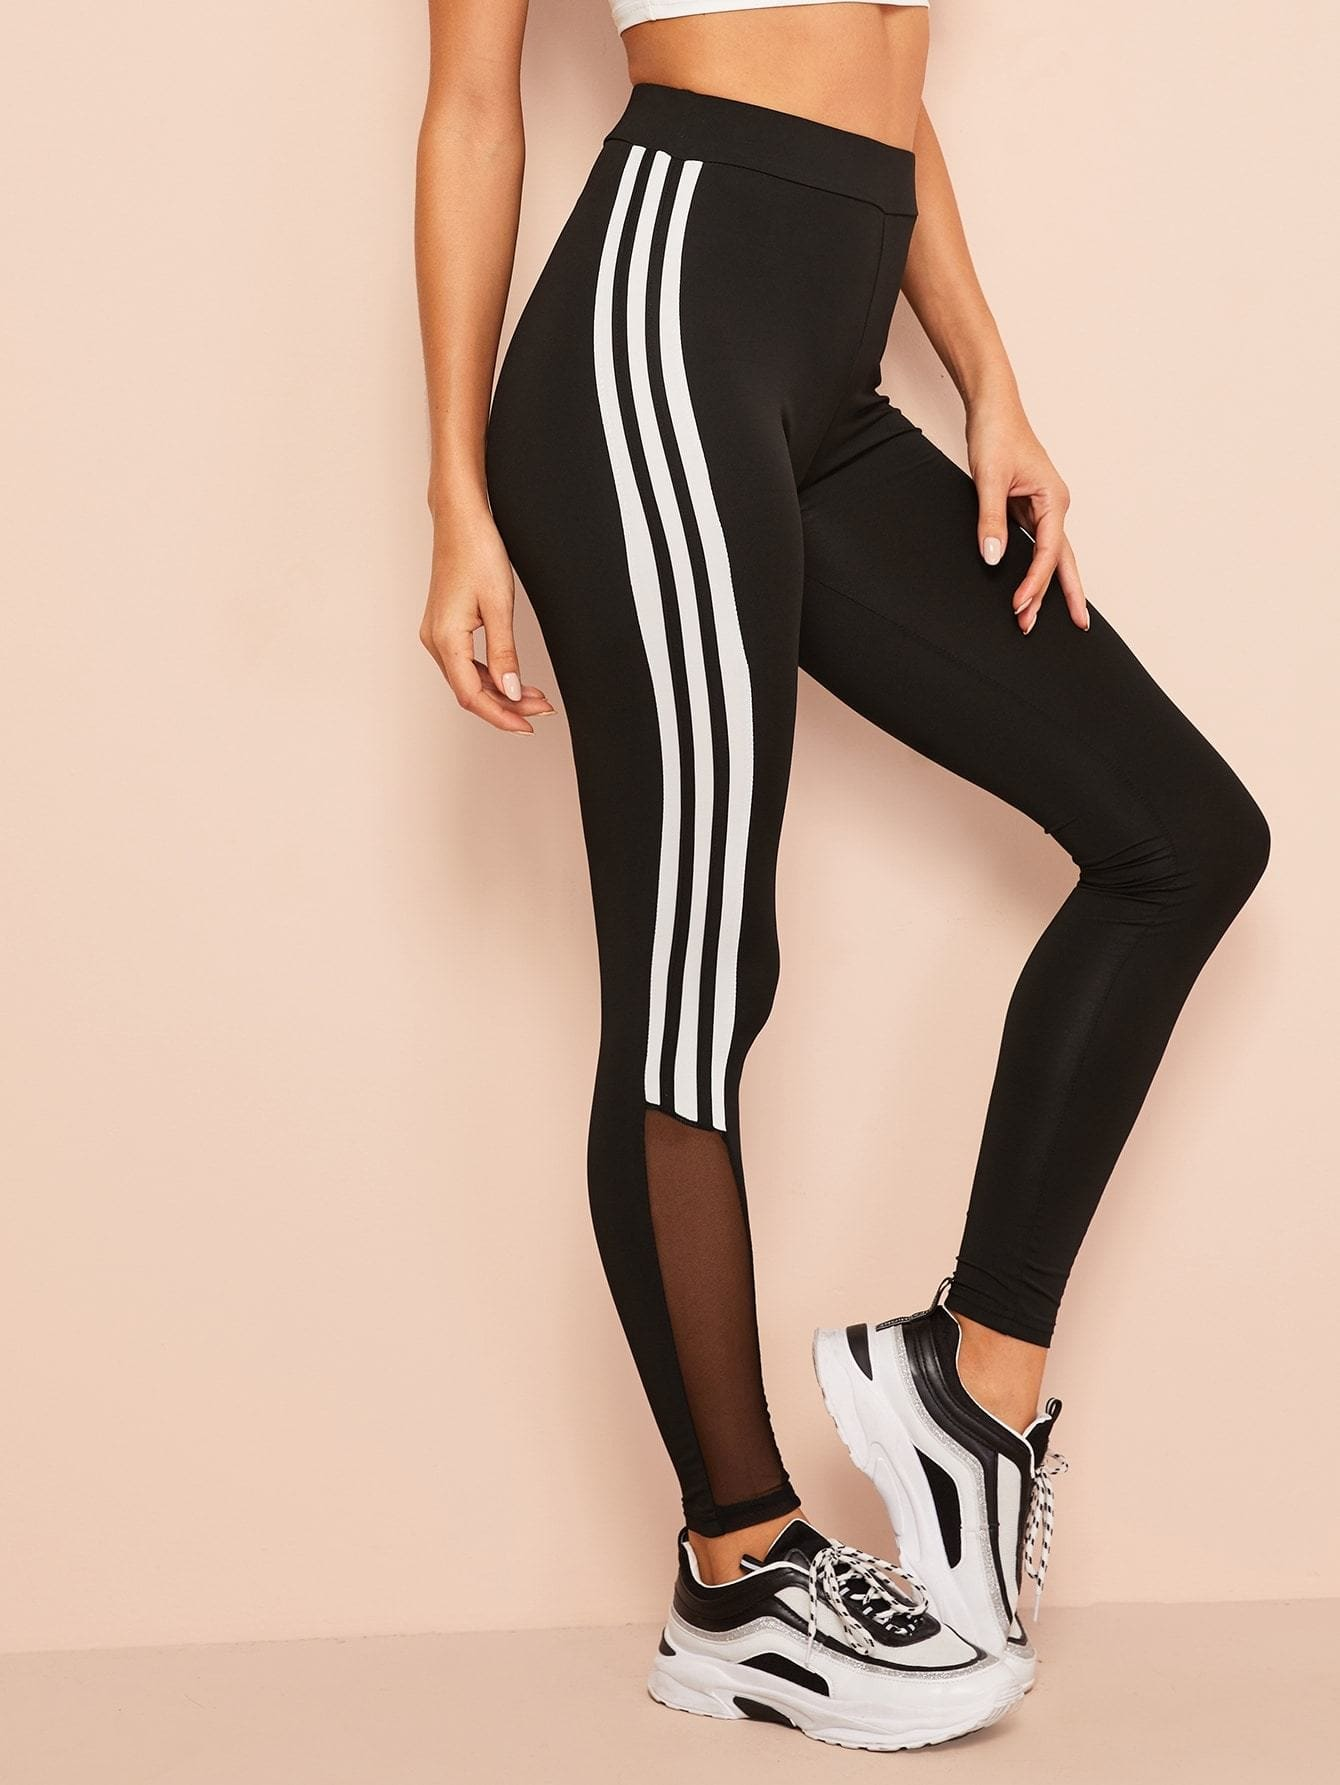 Mesh Insert Striped Leggings - S - Fittness Leggings